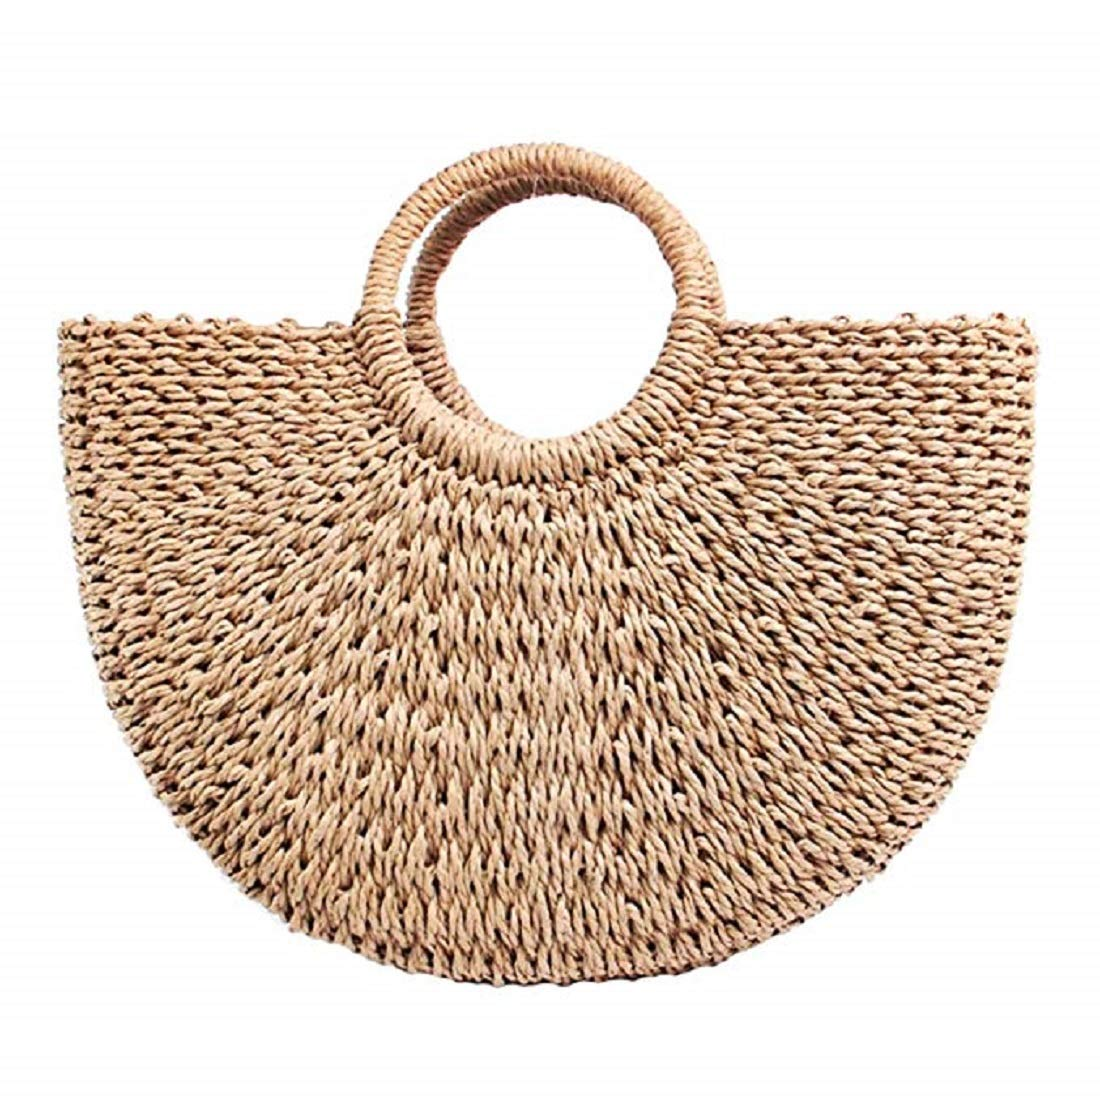 Meeto Hand-woven Straw Large Hobo Bag for Women Round Handle Ring Toto Retro Summer Beach